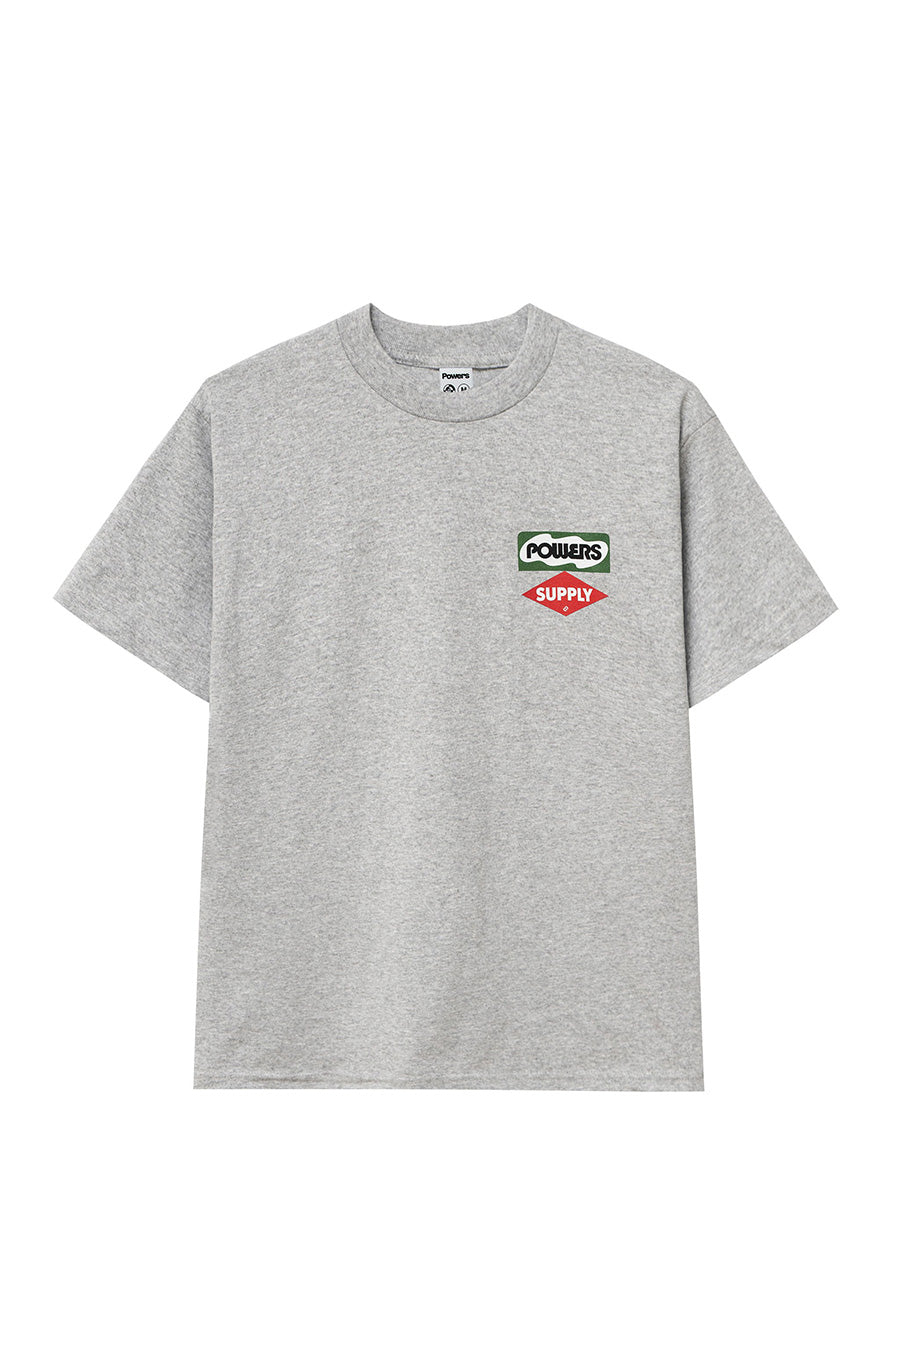 Powers Supply - Grey Vermin T-Shirt | 1032 SPACE